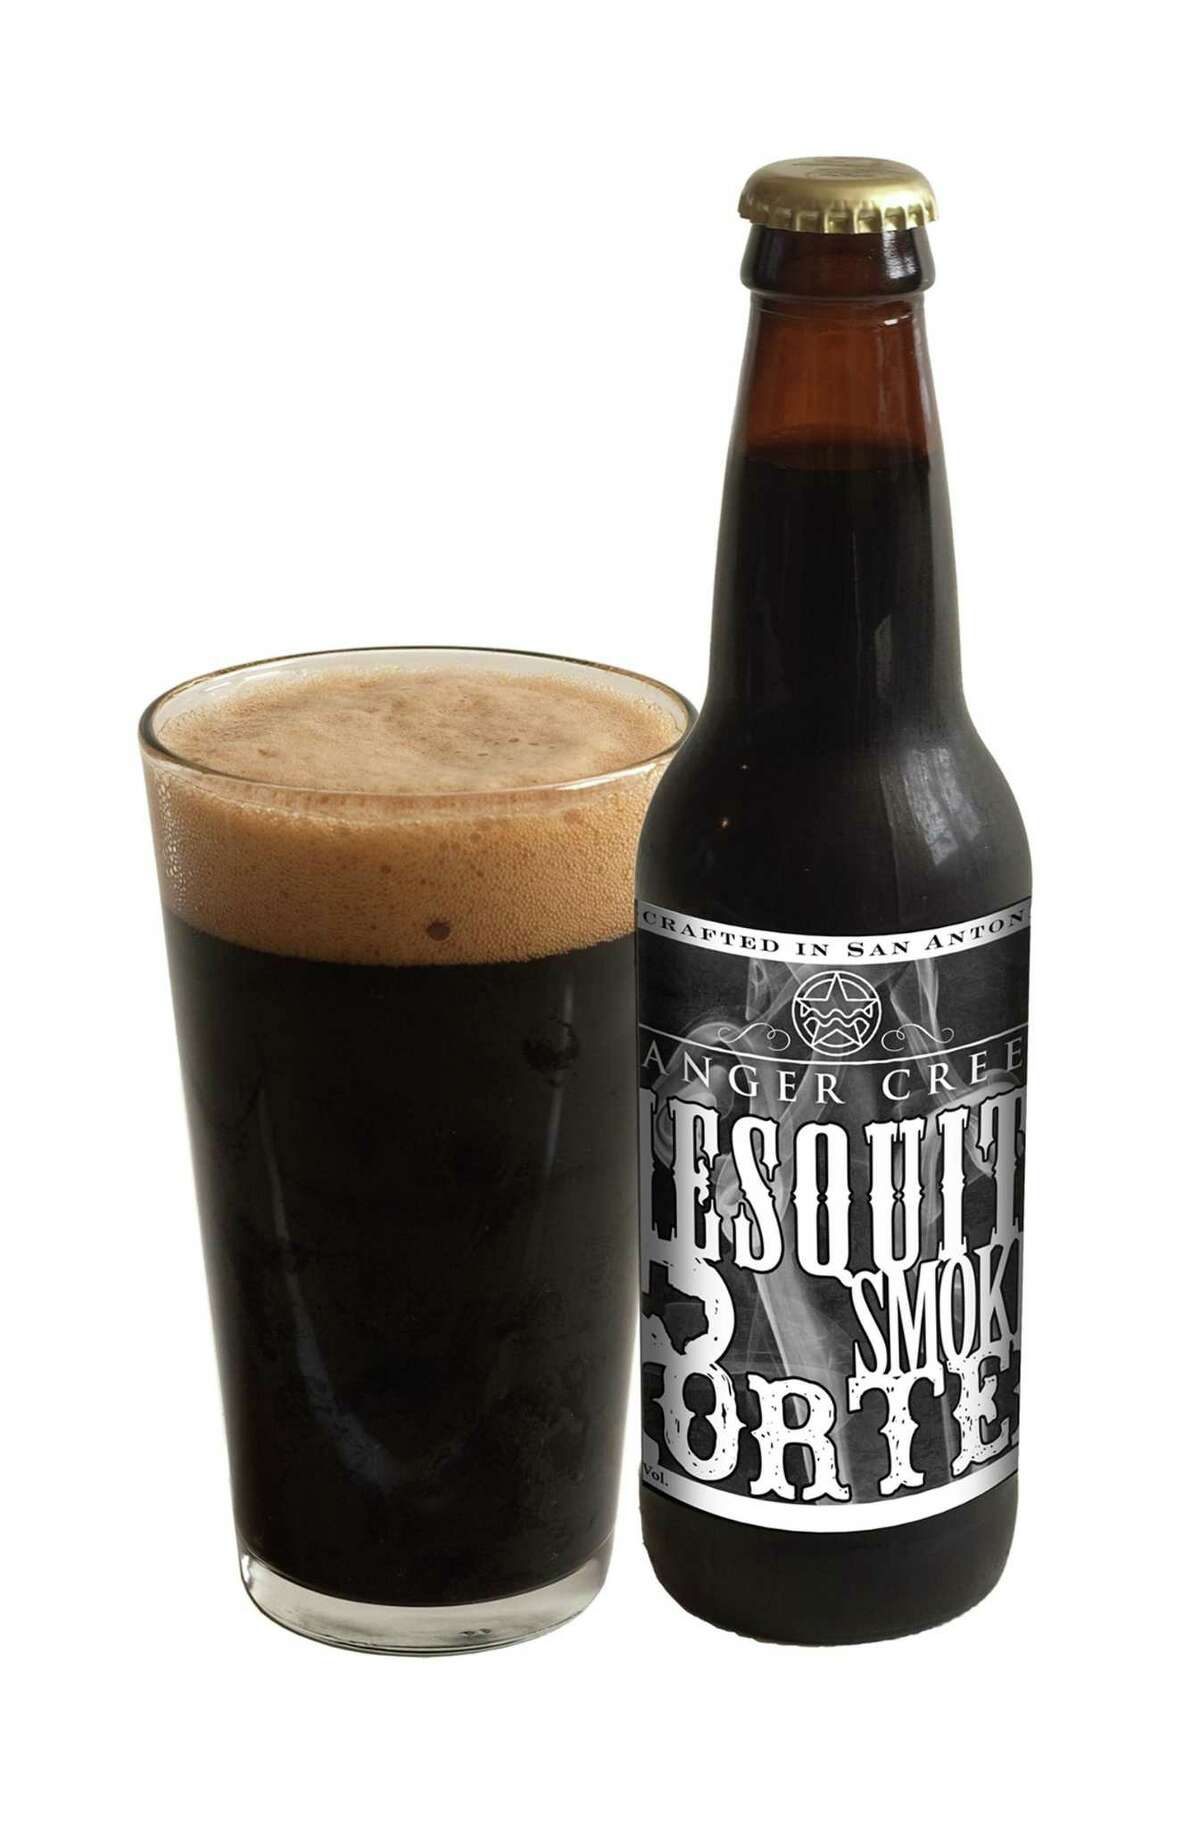 Mesquite Smoked Porter is one of Ranger Creek Brewing & Distilling's four initial beers.